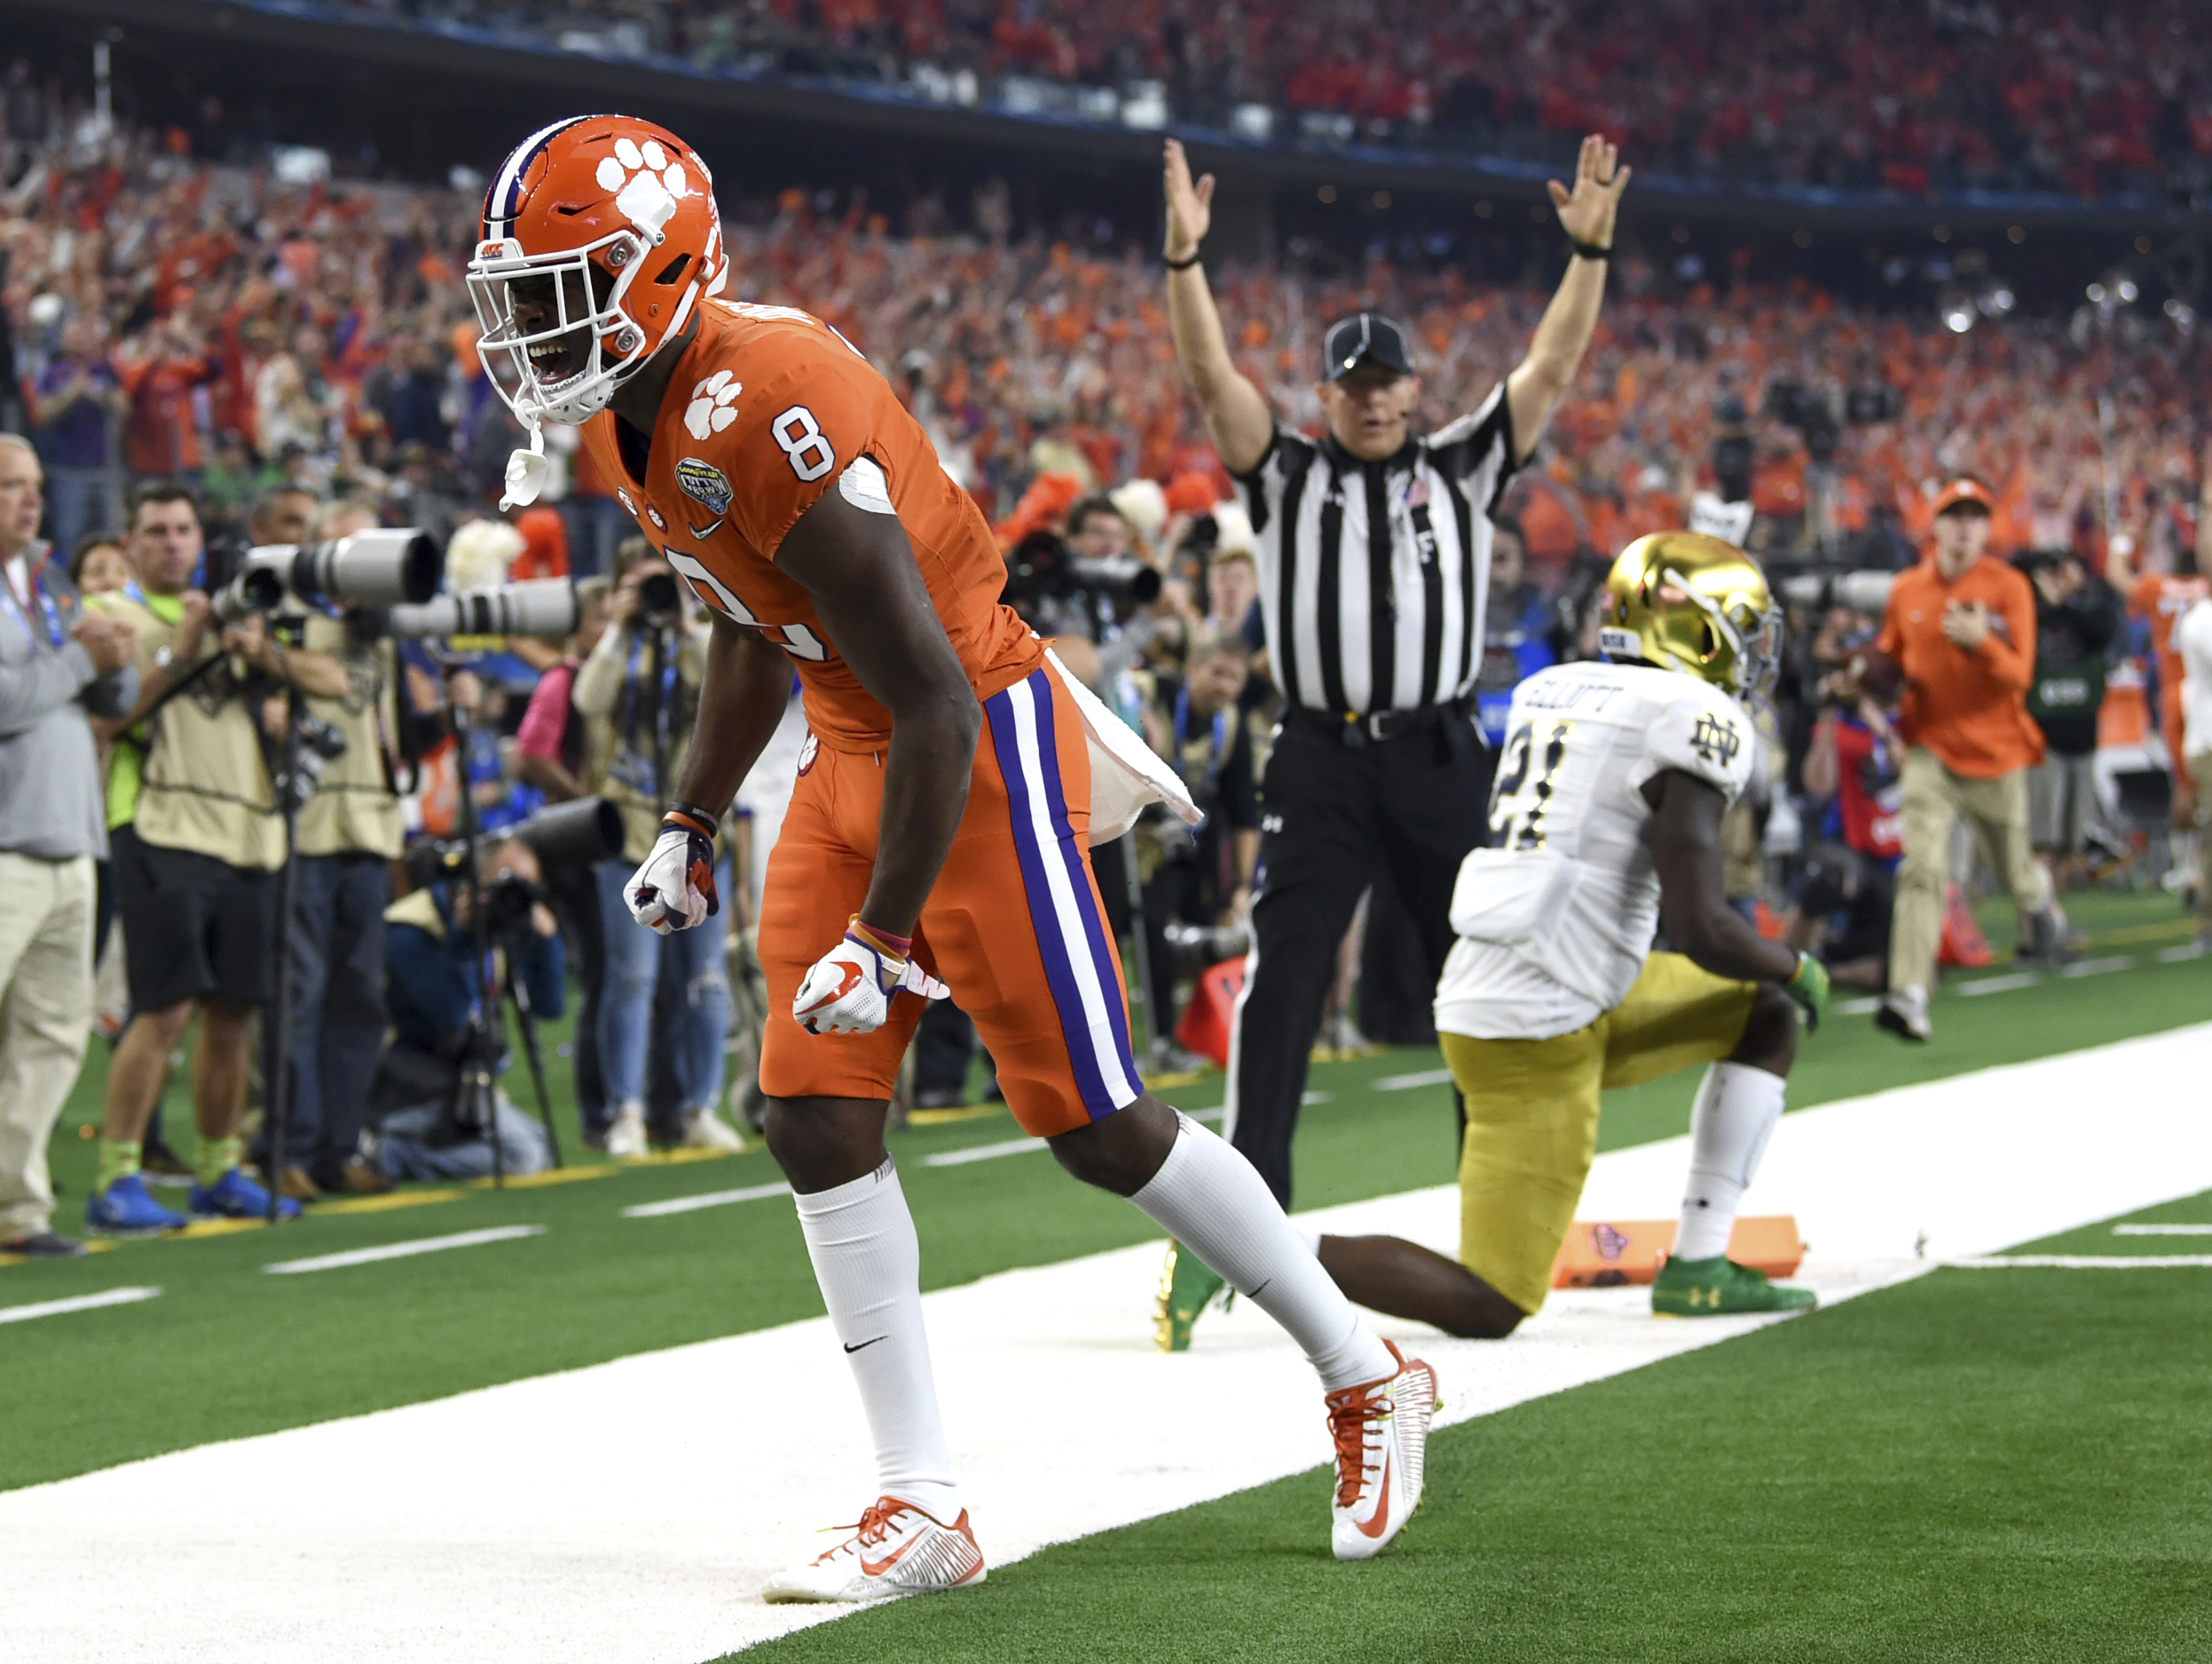 Clemson wide receiver Justyn Ross (8) celebrates his touchdown catch in front of Notre Dame safety Jalen Elliott (21) in the first half of the NCAA Cotton Bowl semi-final playoff football game, Saturday, Dec. 29, 2018, in Arlington, Texas. (AP Photo/Jeffrey McWhorter)